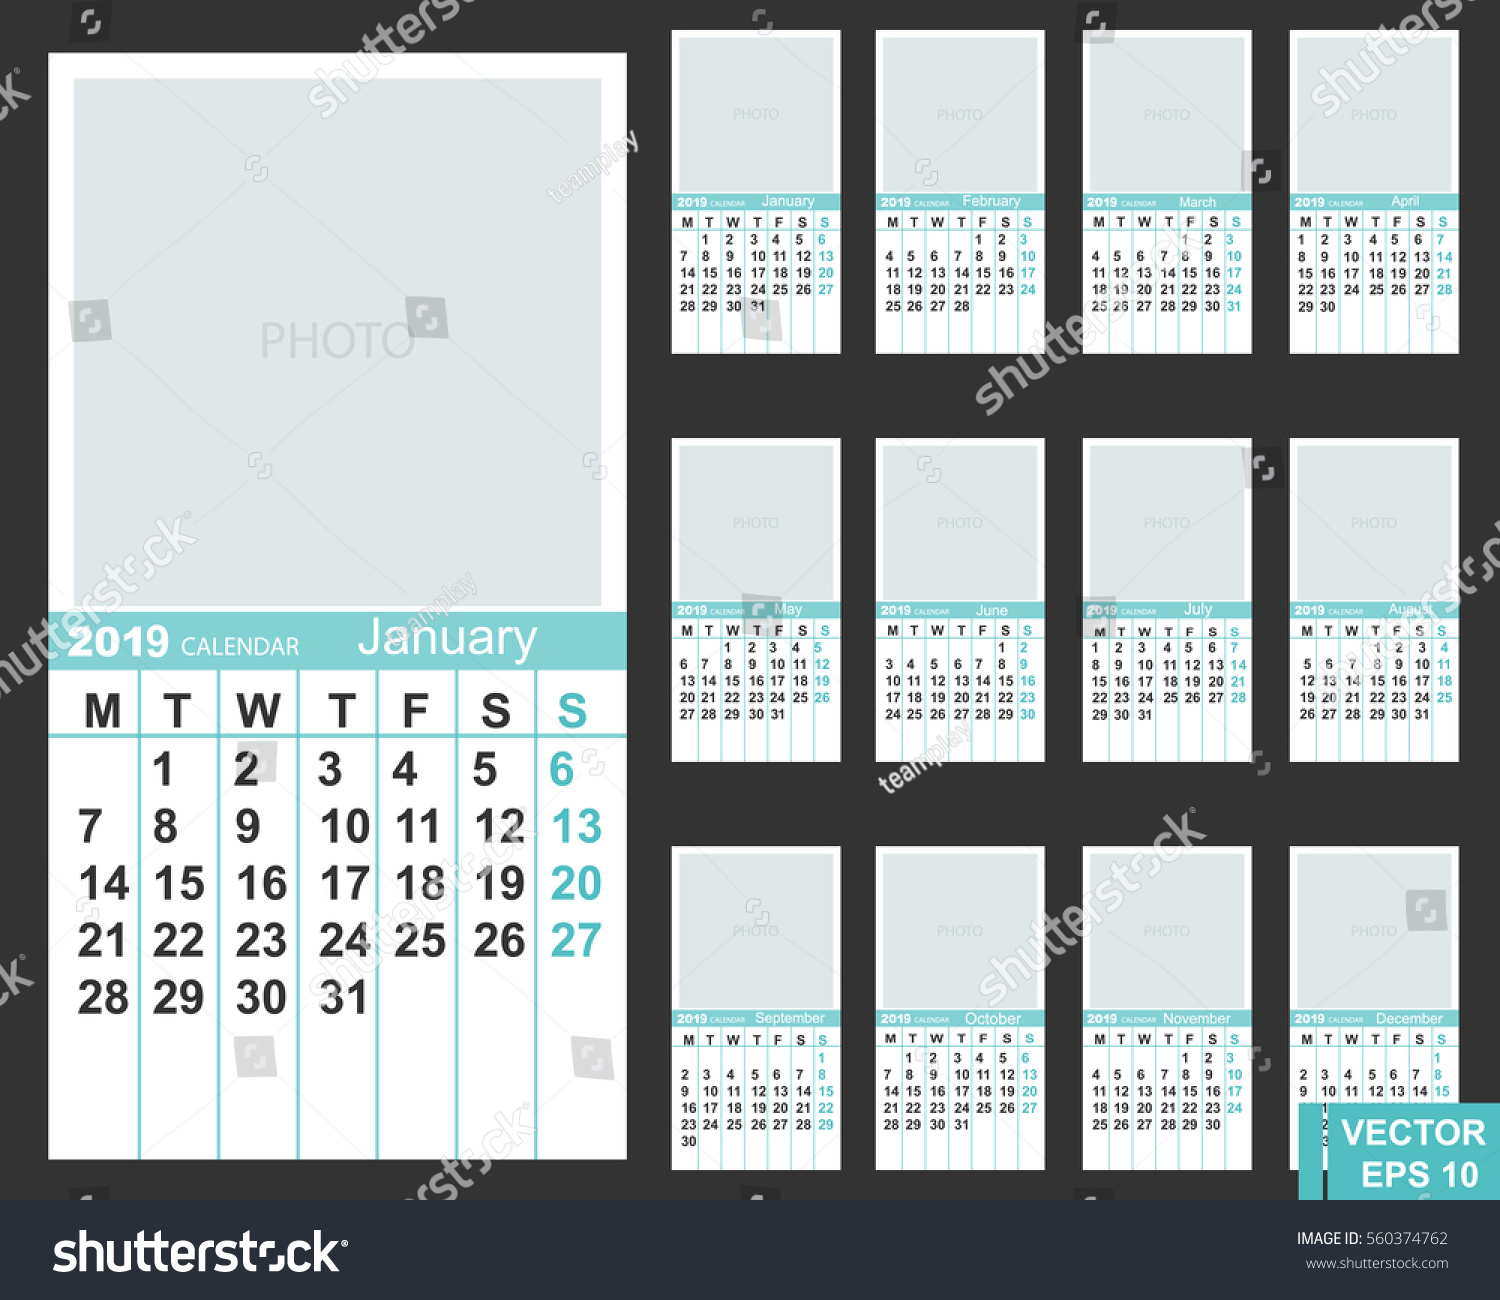 Calendar New Year 2019 Date Your Stock Photo (Photo, Vector ...